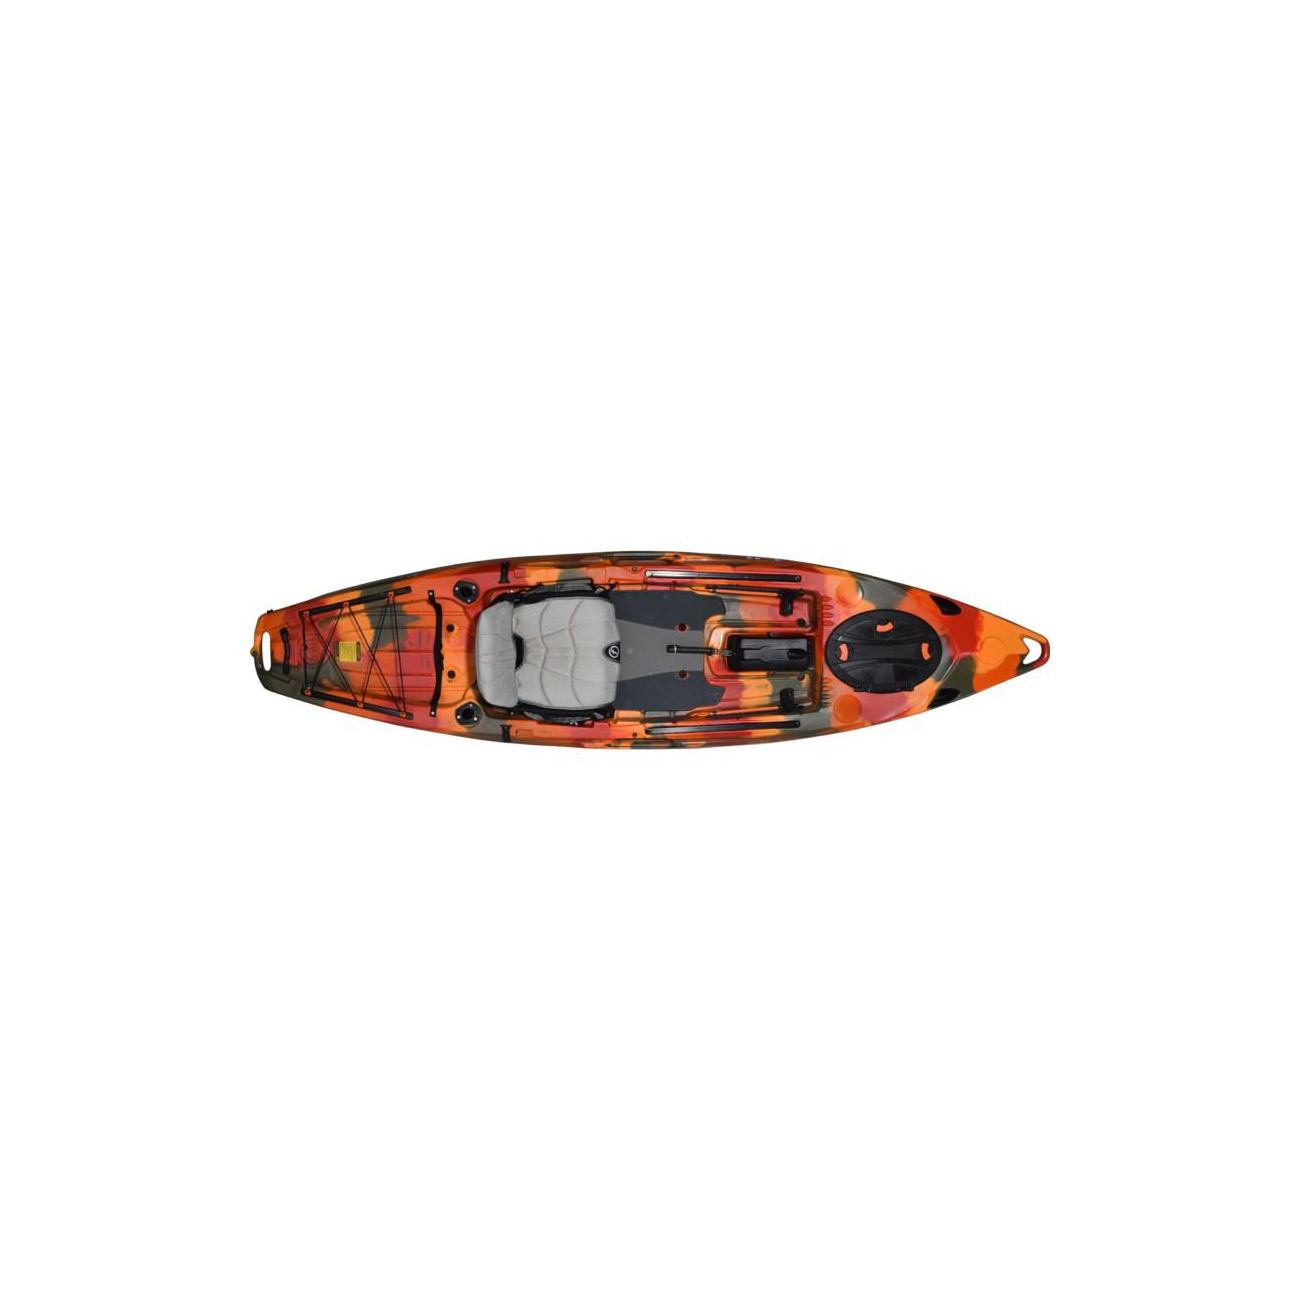 https://feelfreekayak.eu/657-small_default/lure-115-v2-winter-camo.jpg